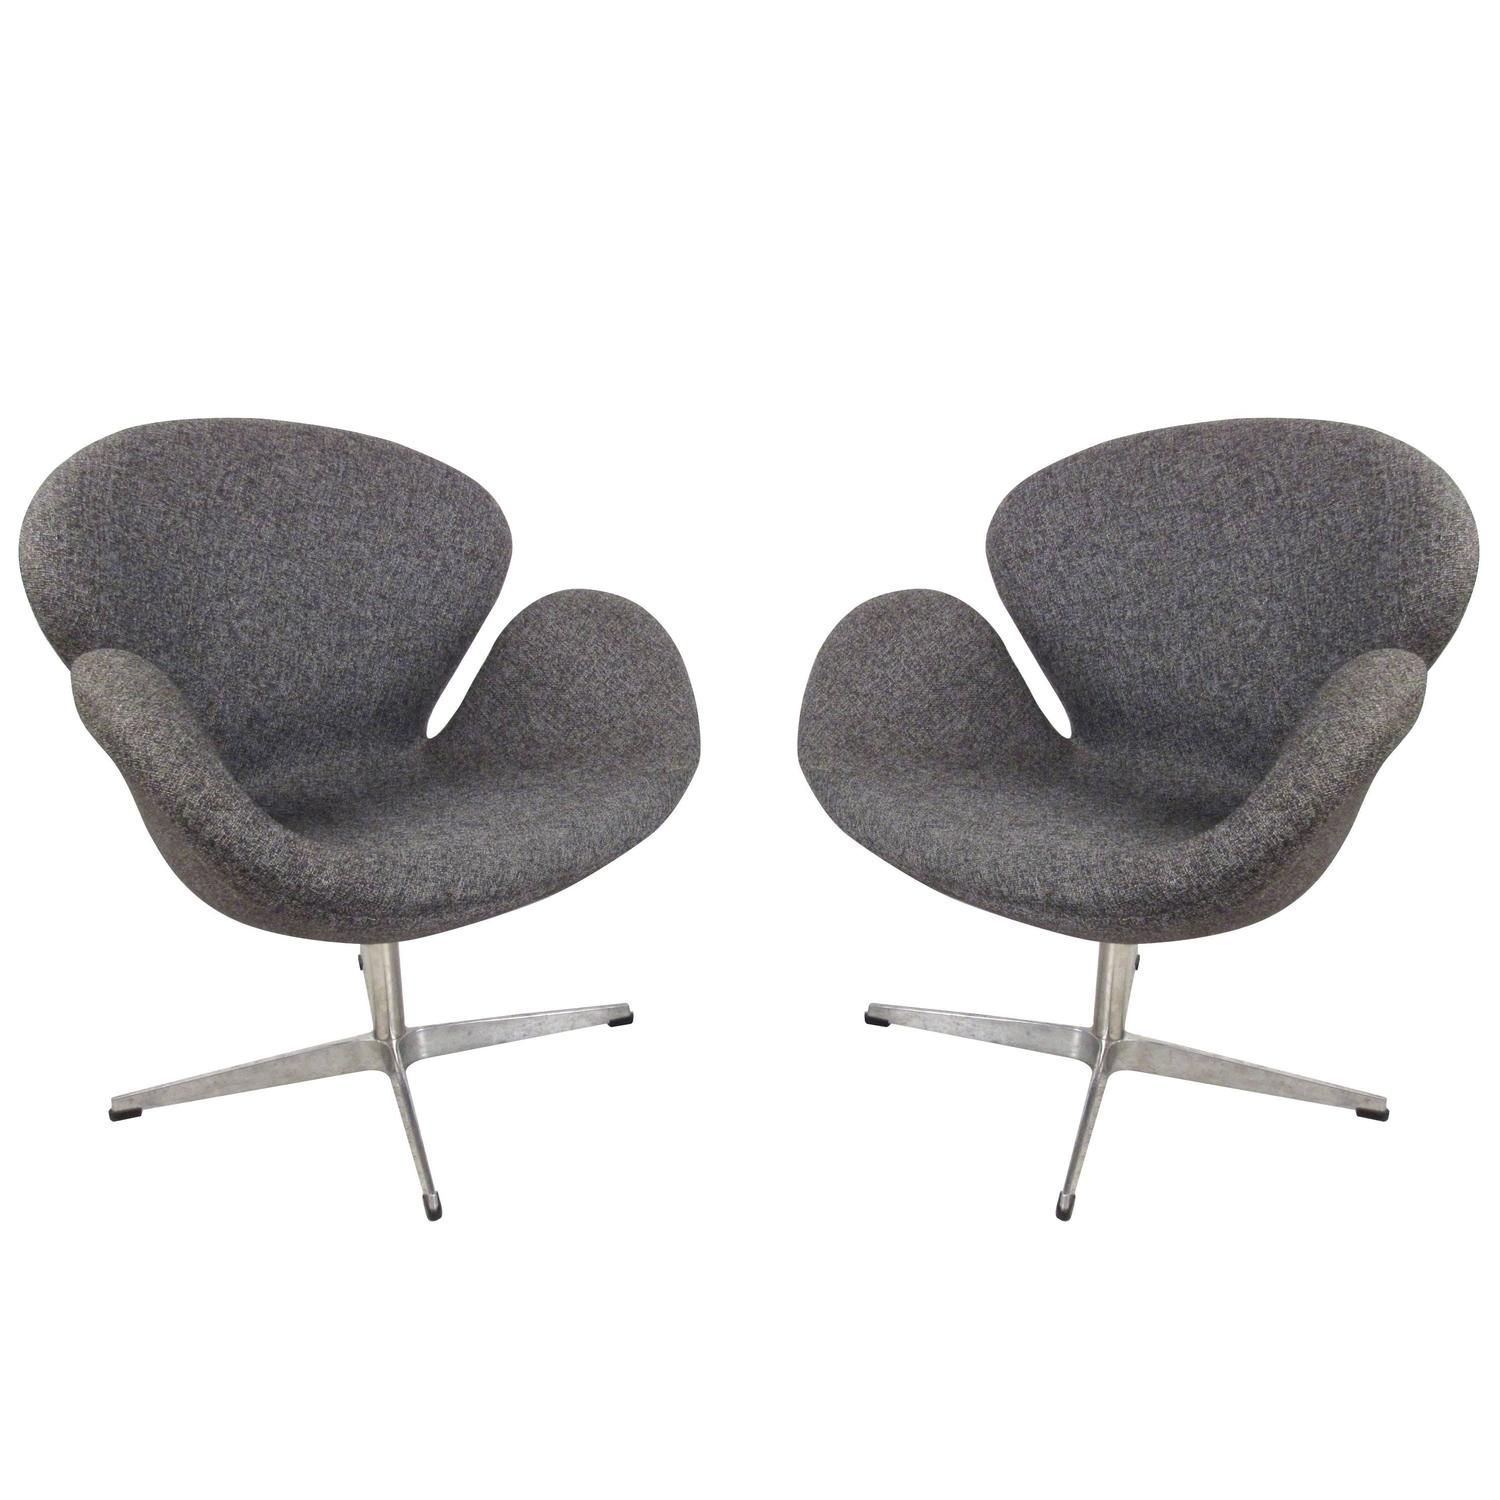 Pair of Mid-Century Modern Arne Jacobsen Style Swivel Lounge Chairs 1